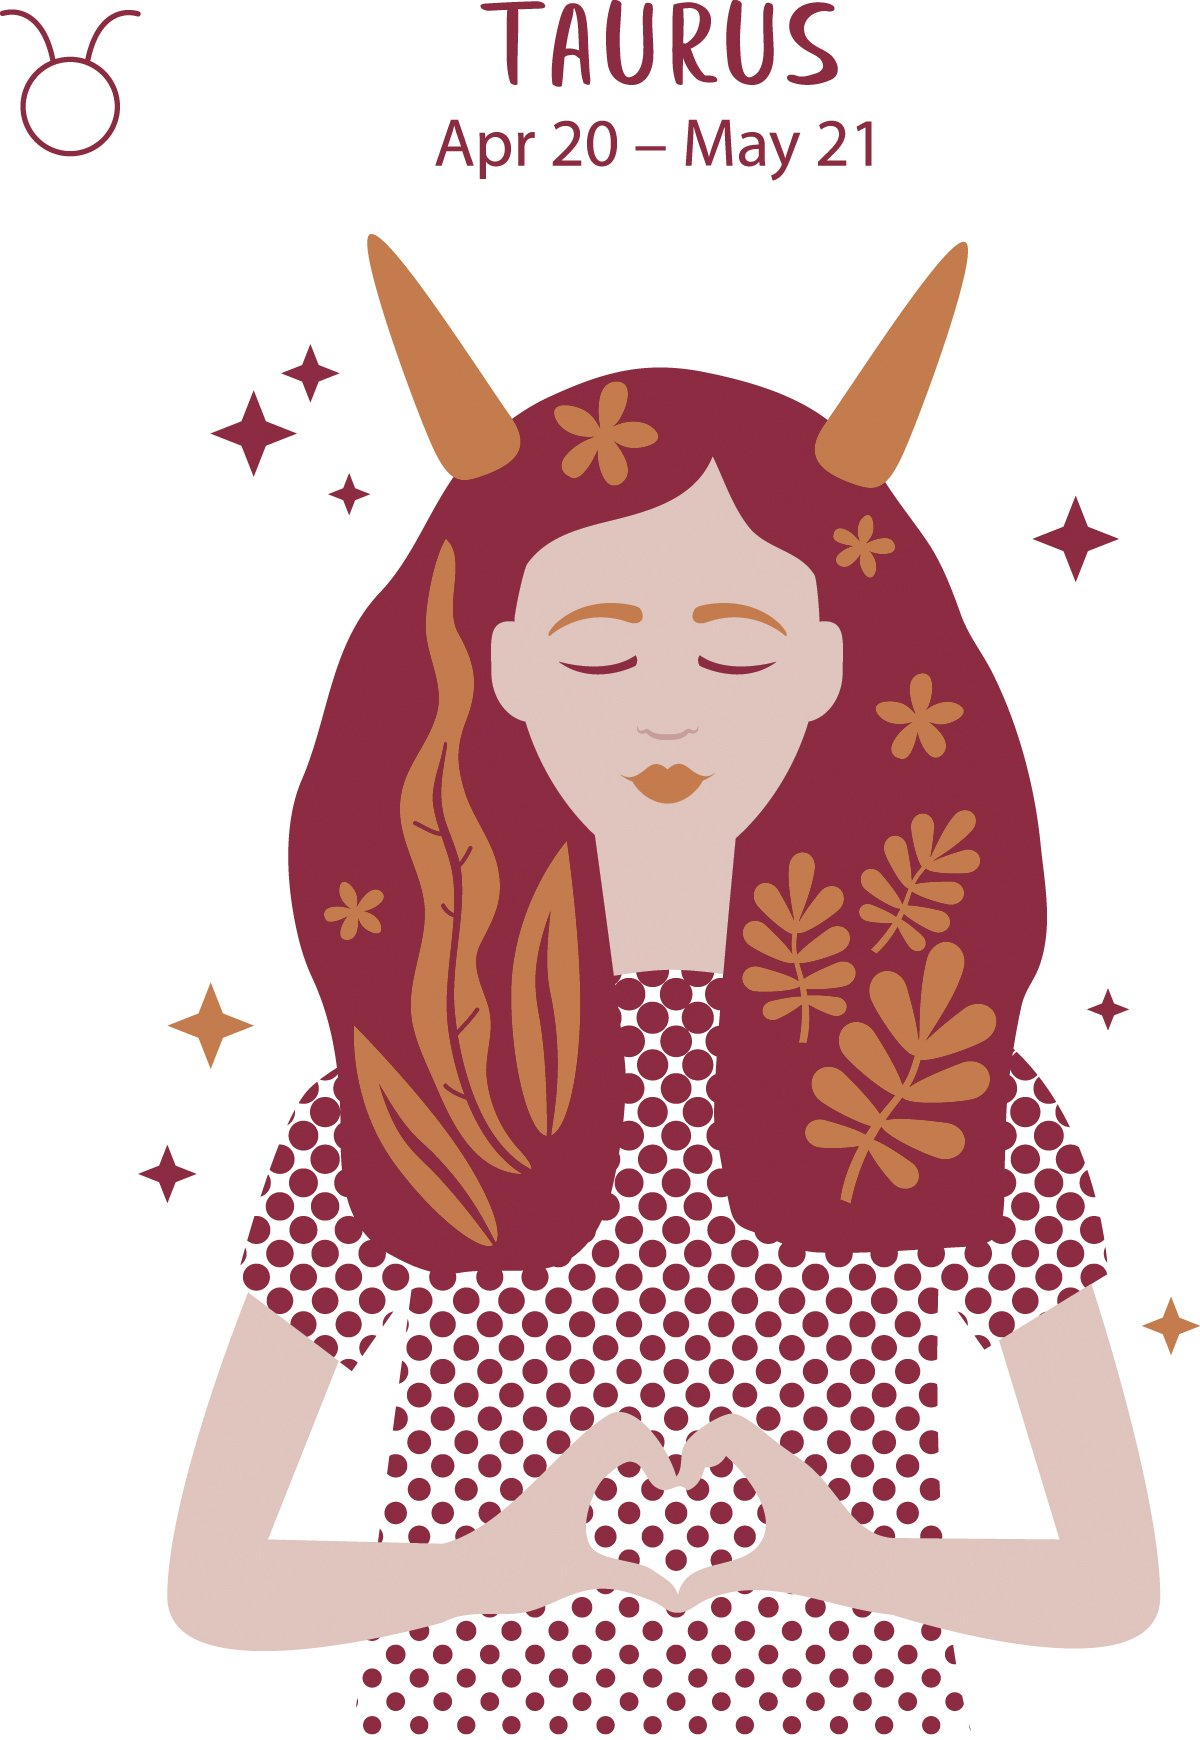 Taurus (April 20 - May 21) represented by a woman with short horns. | Photo: AmoMama